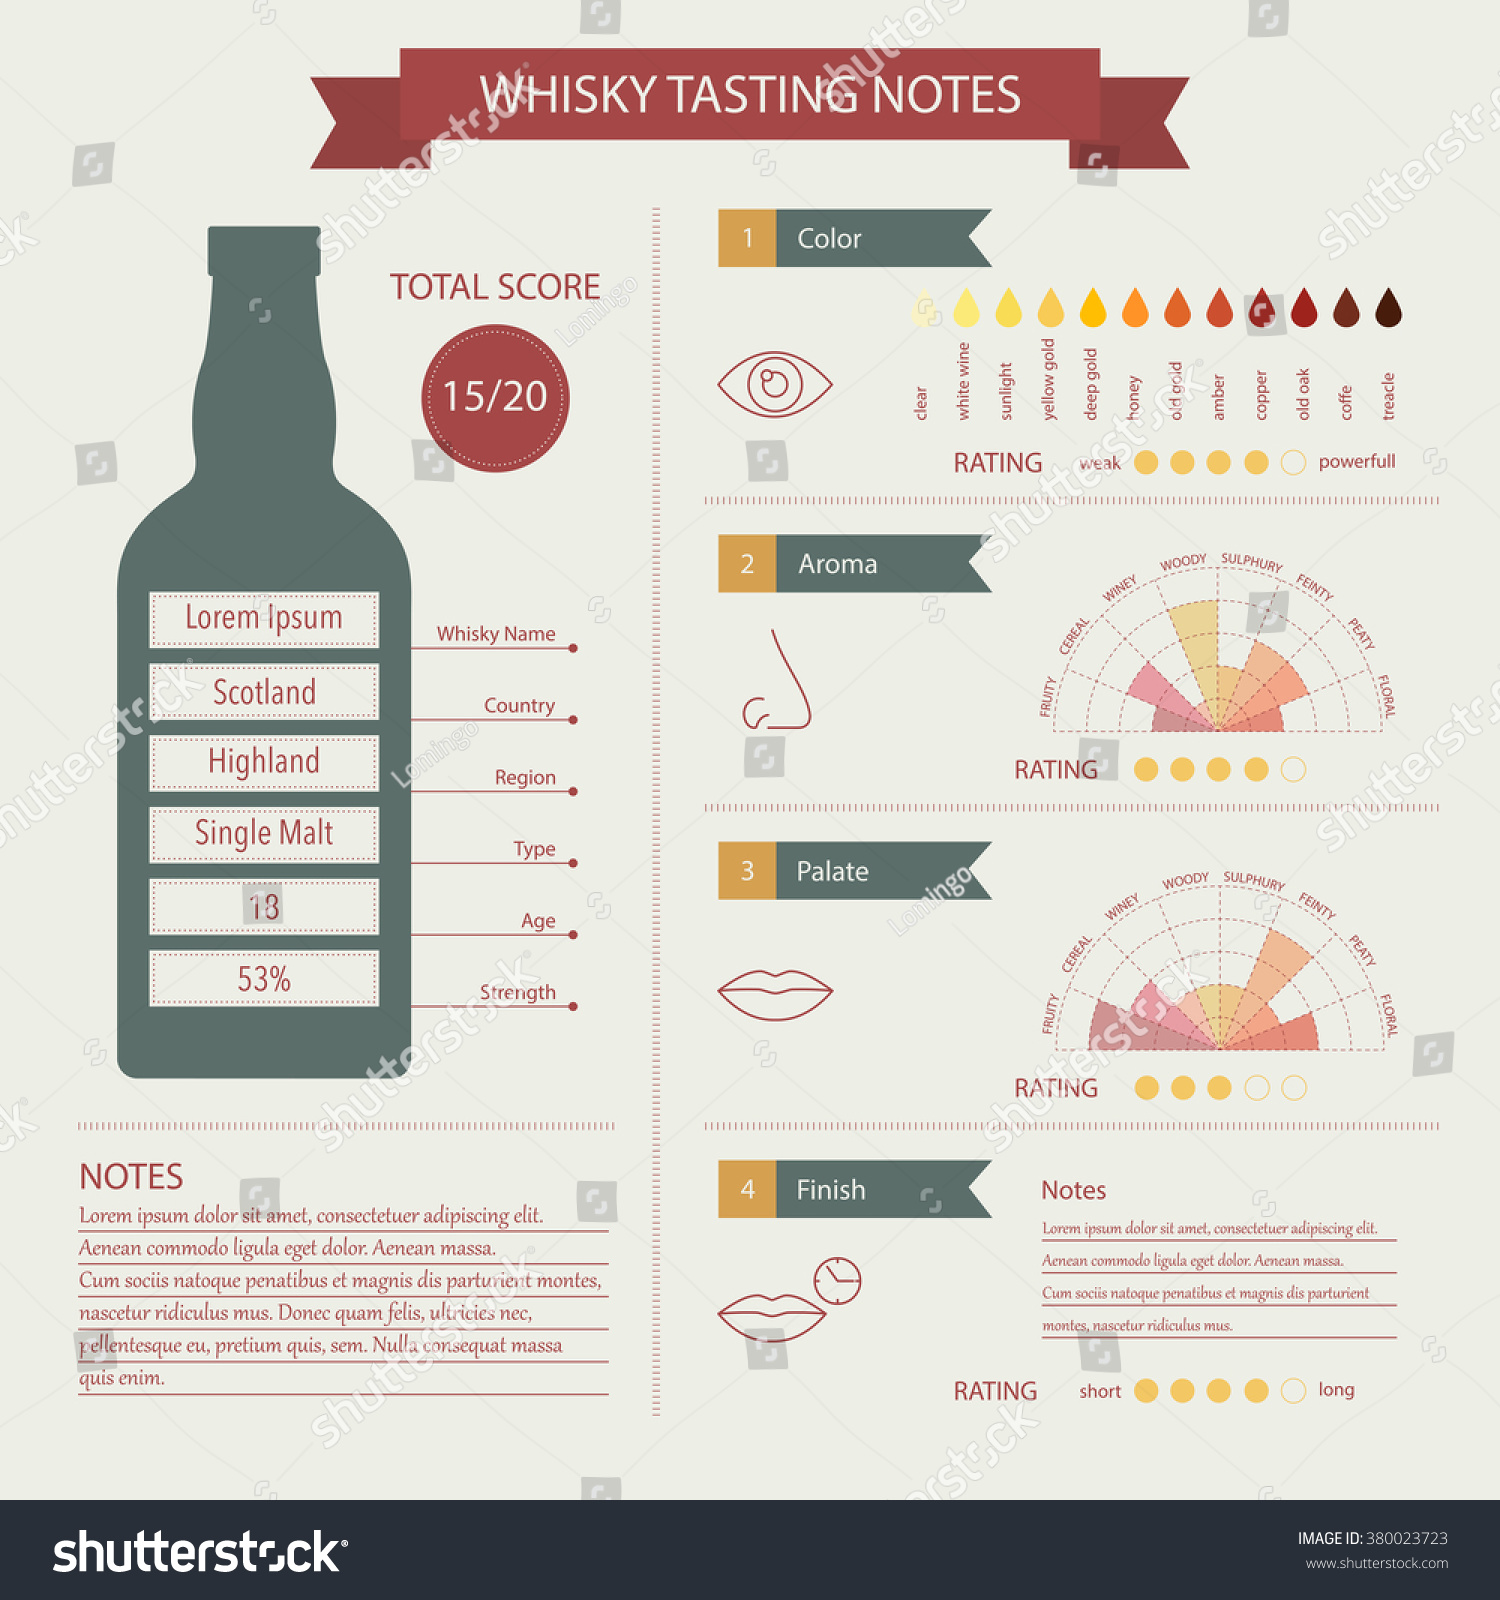 Whisky Tasting Notes Style Template Describe Image Vectorielle De